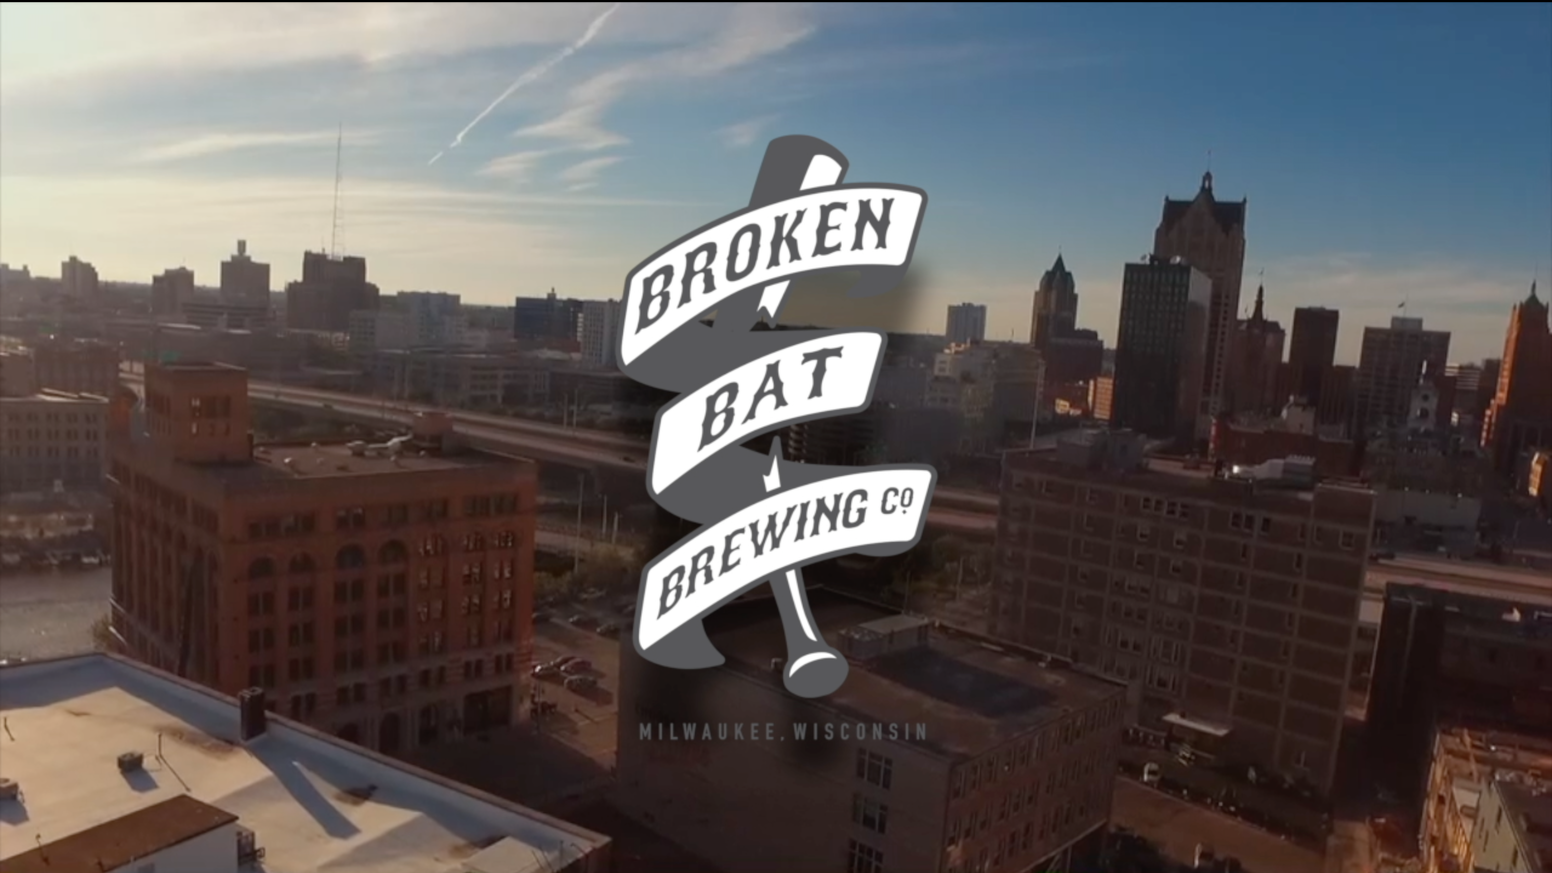 Our pitch: bring Milwaukee's first baseball nanobrewery to life. Broken Bat Brewing Co. opens April 2017 and we need your support!